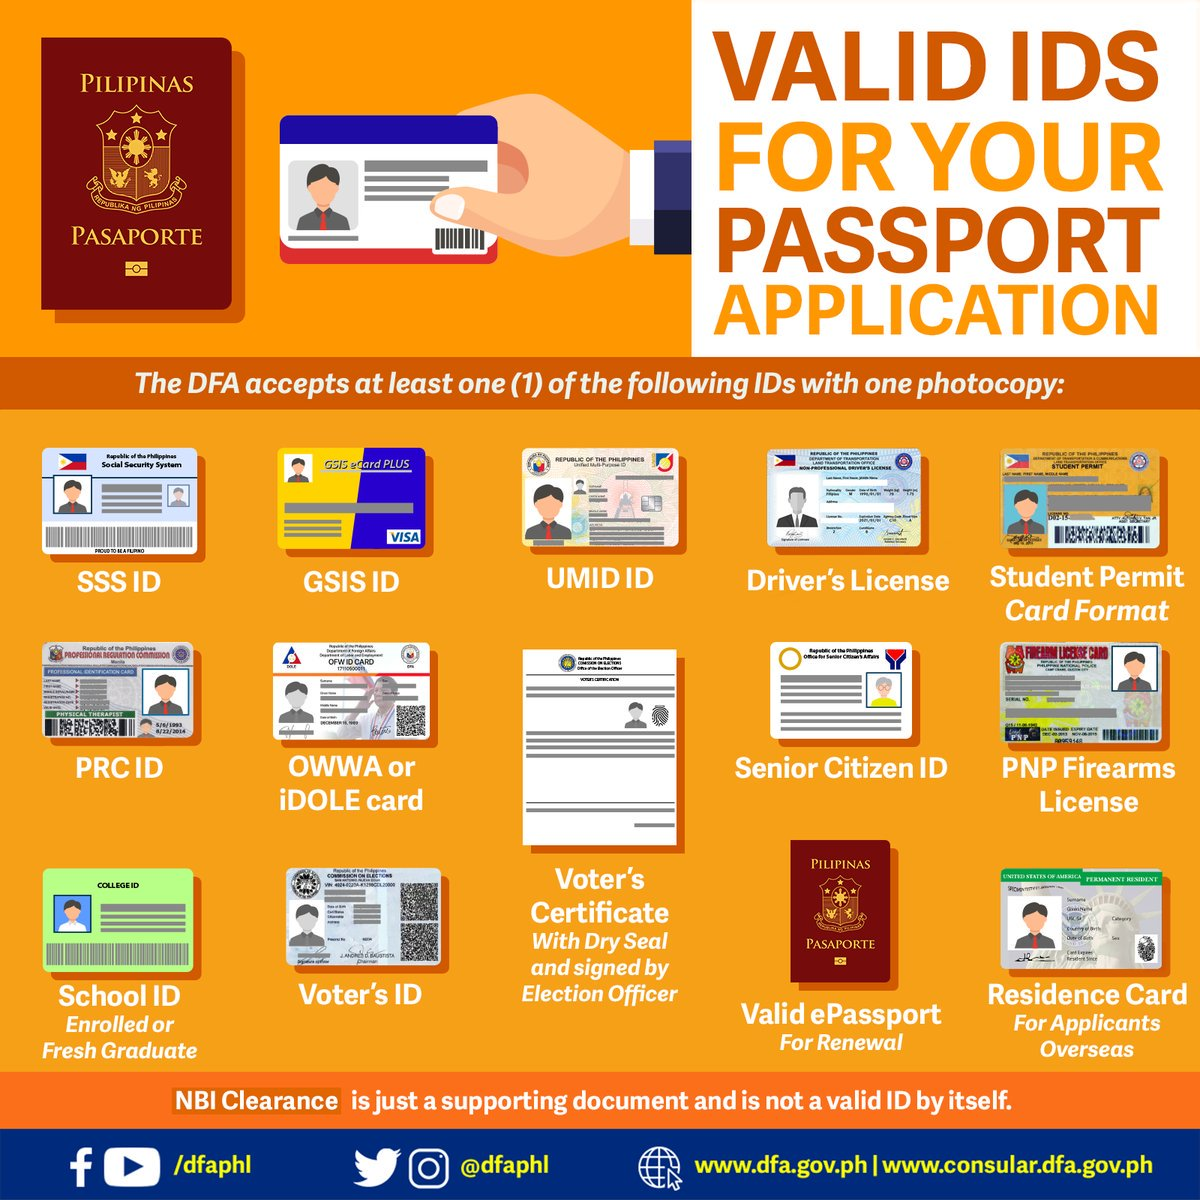 Present with co phpassport On At Applicants Twitter One Need To dfainaction… Their t During Consular Of Valid Philippines afleixwqnm Least Dfa